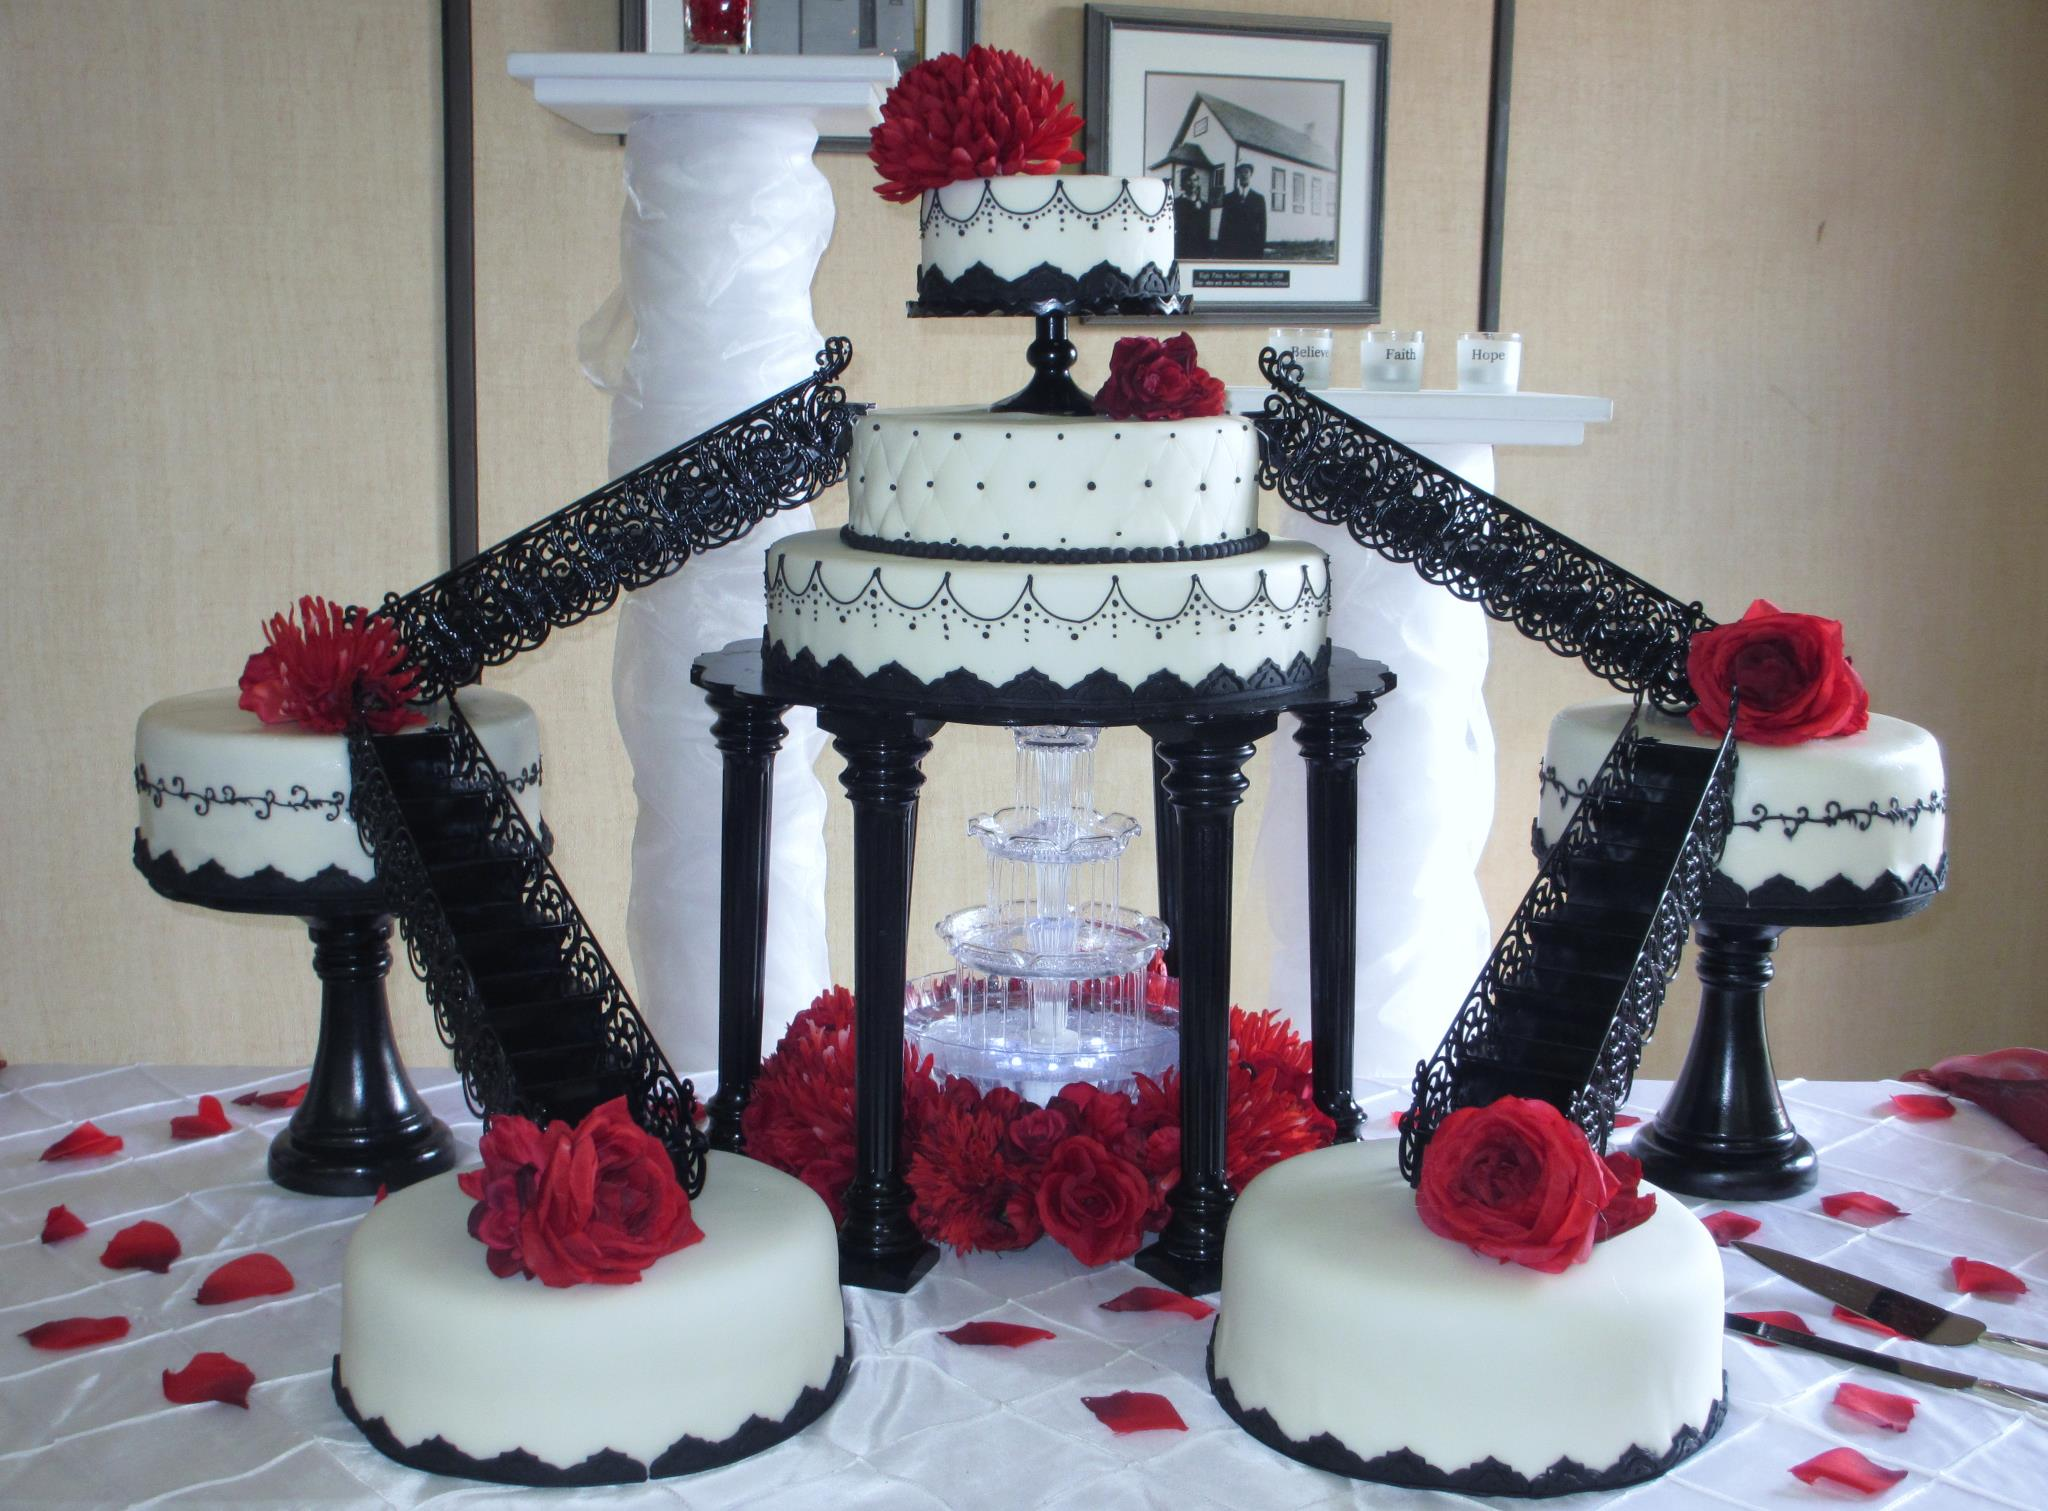 Stunning Red White And Black Wedding Cake Contemporary - Styles ...